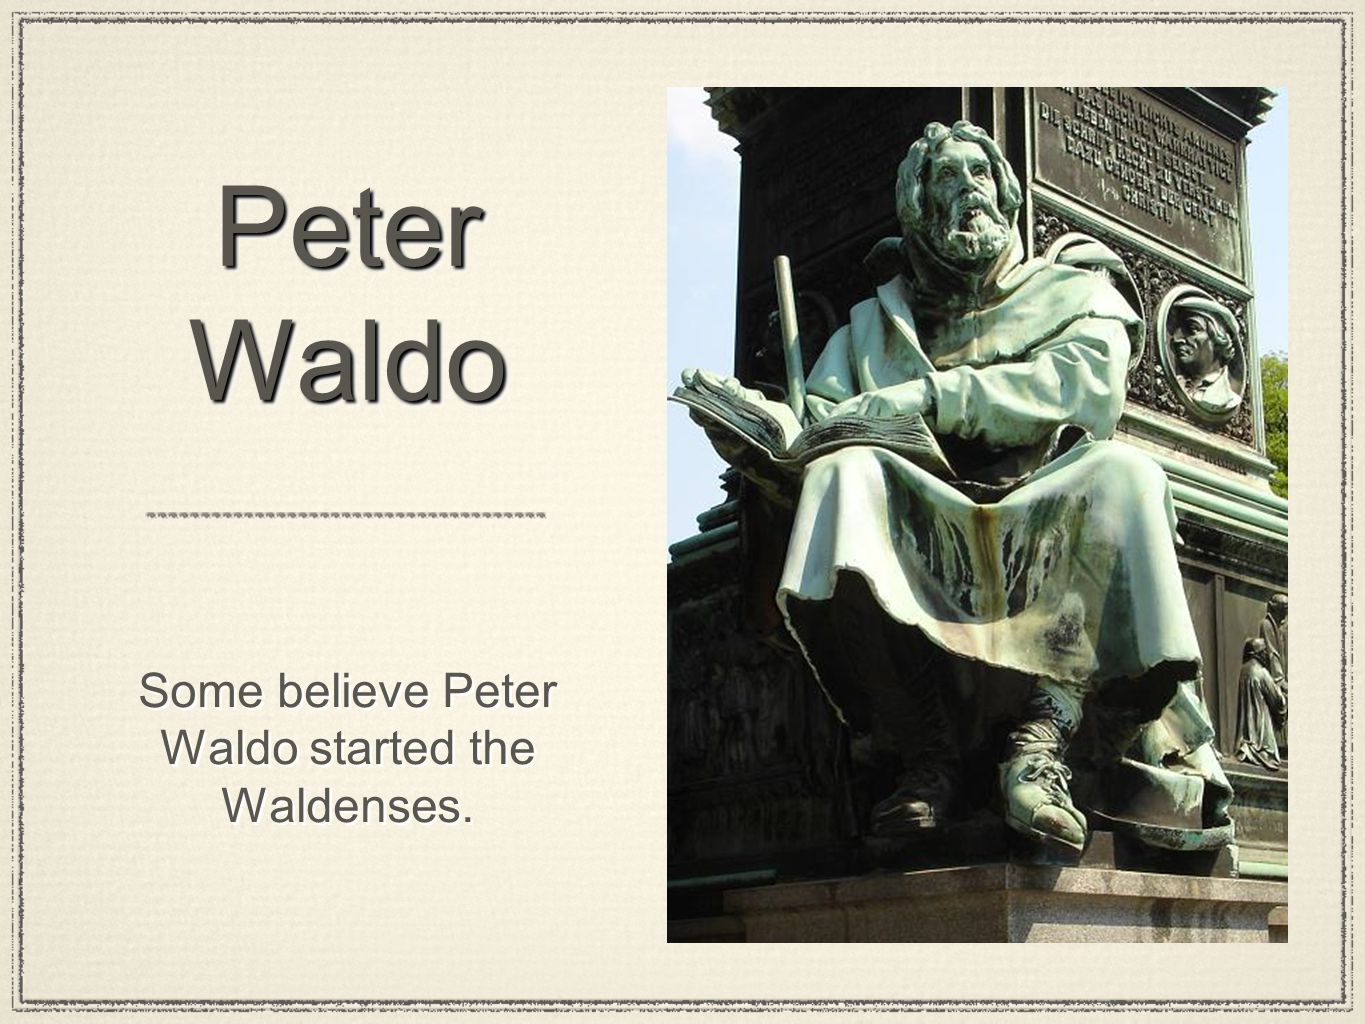 Peter Waldo Some believe Peter Waldo started the Waldenses.